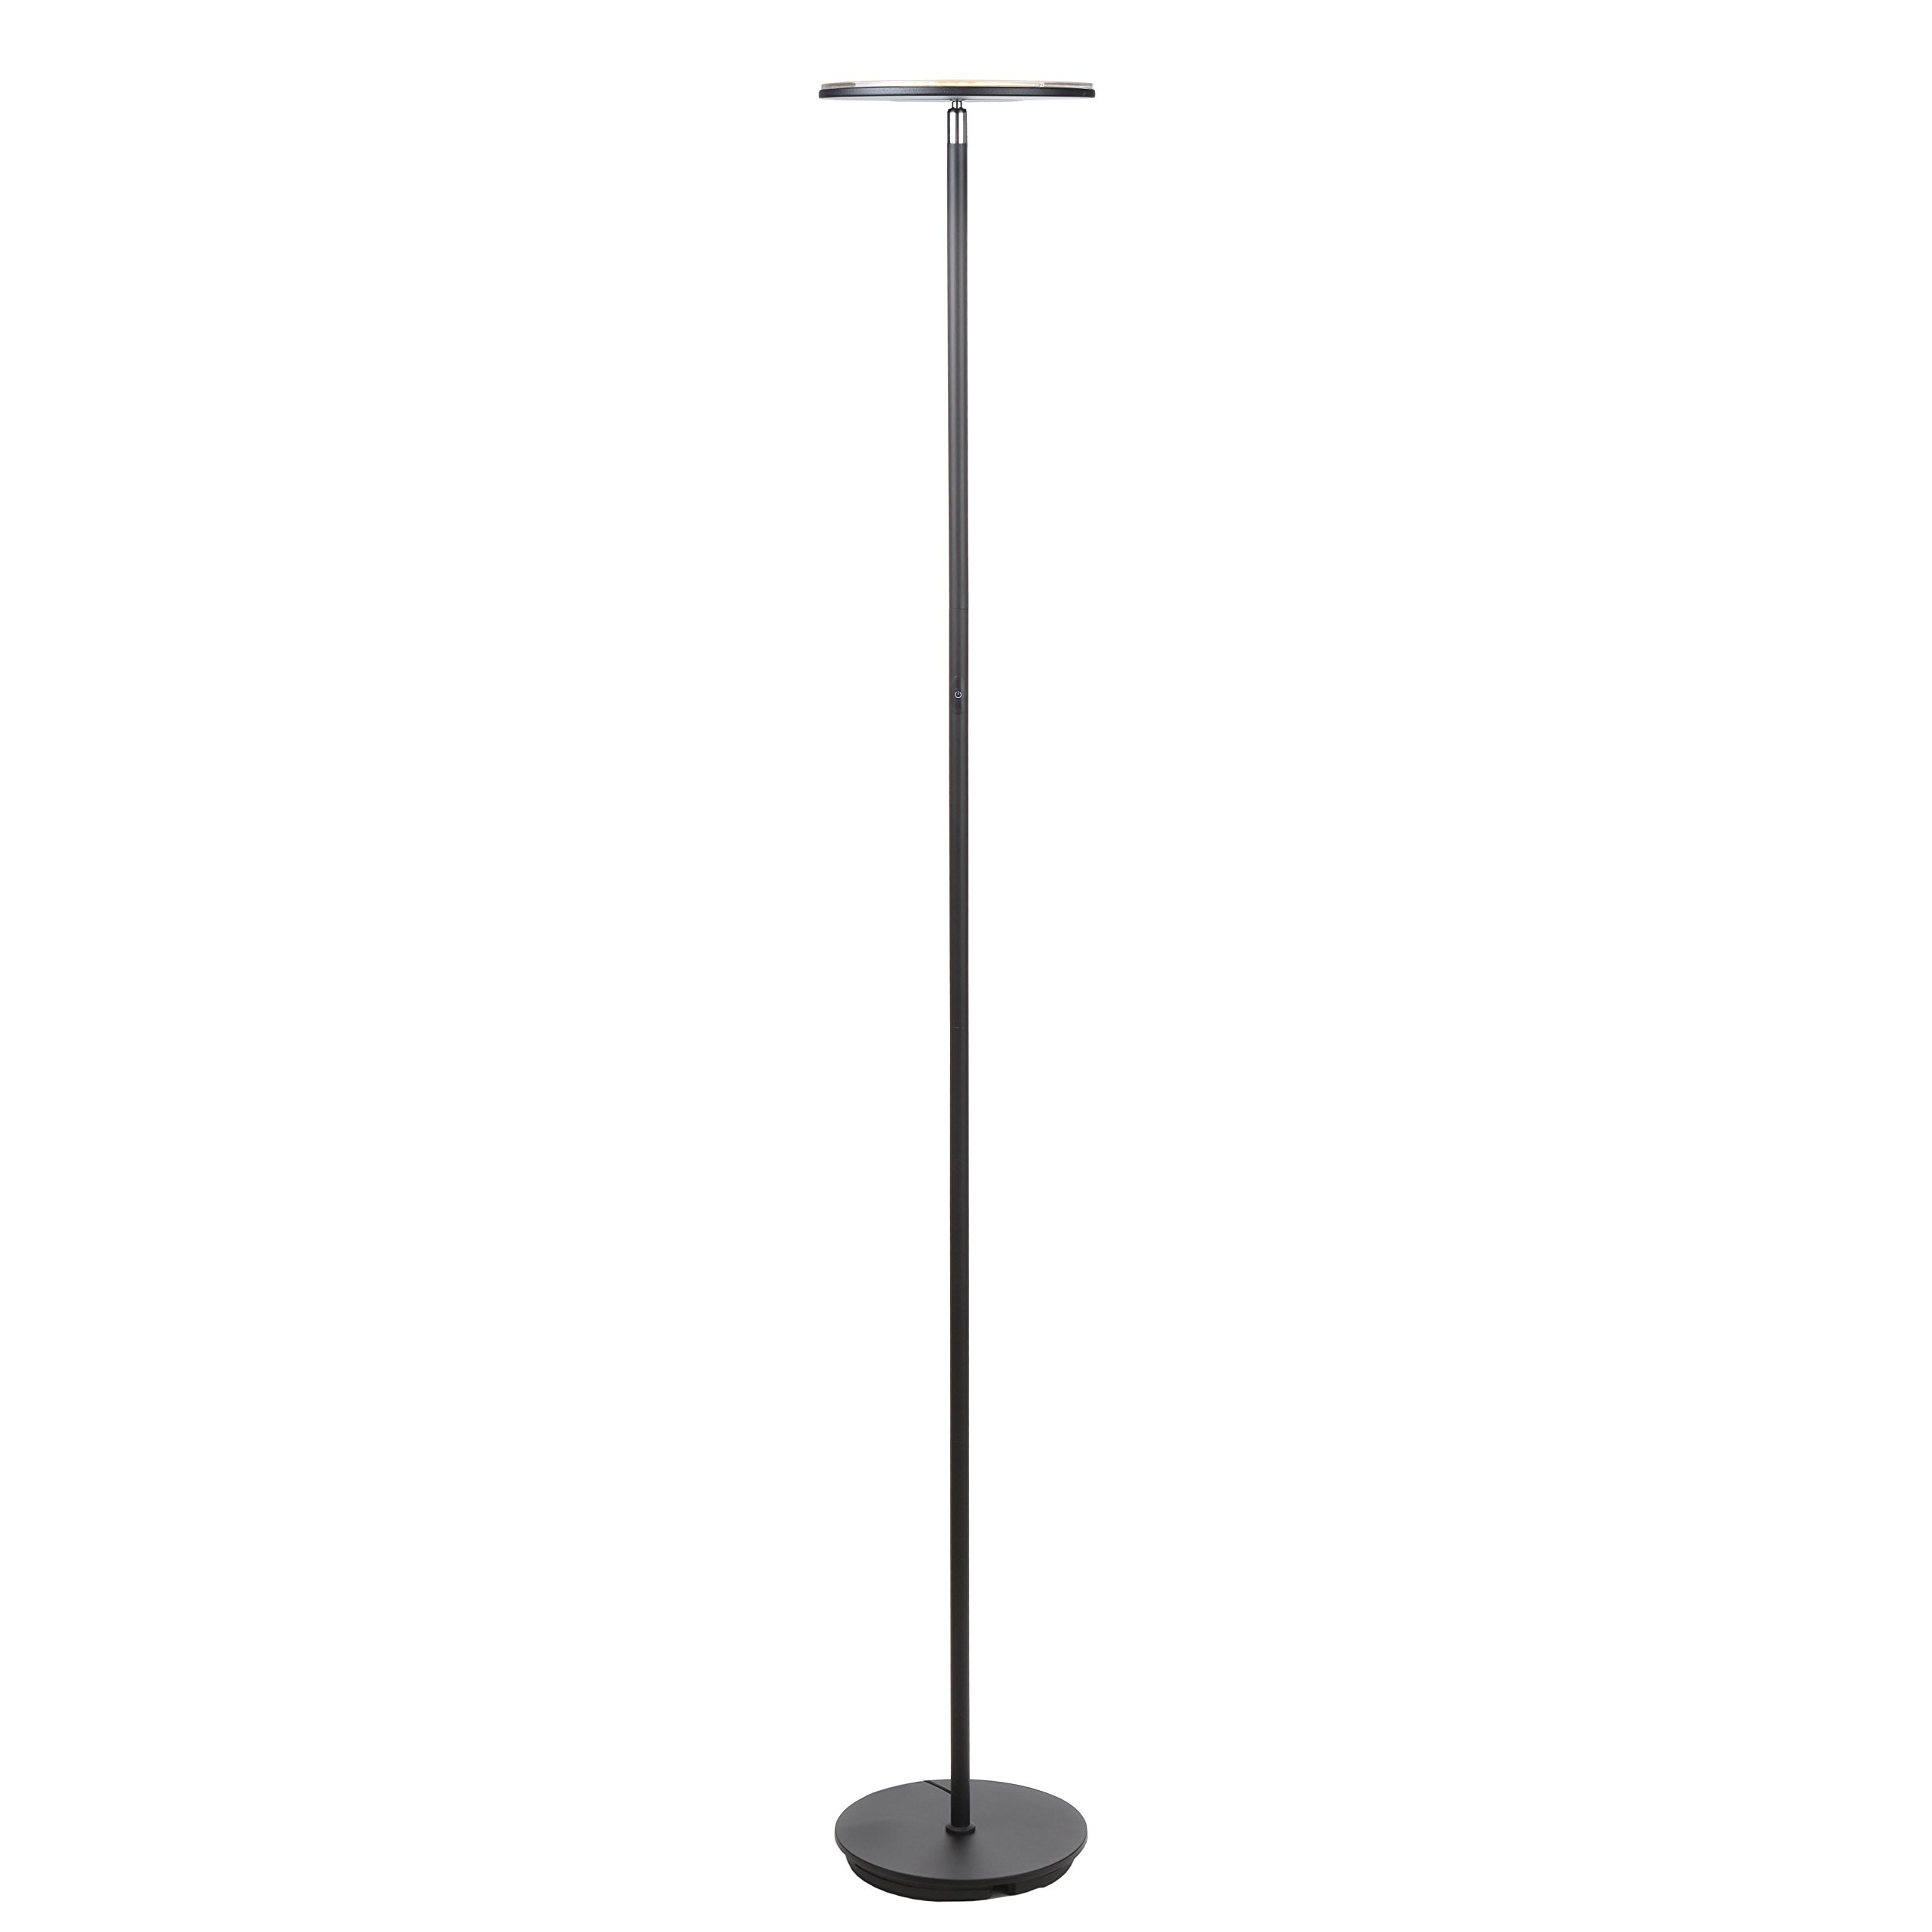 Brightech Sky LED Torchiere Super Bright Floor Lamp - Tall Standing Modern Pole Light for Living Rooms & Offices - Dimmable Uplight for Reading Books In your Bedroom etc - Black